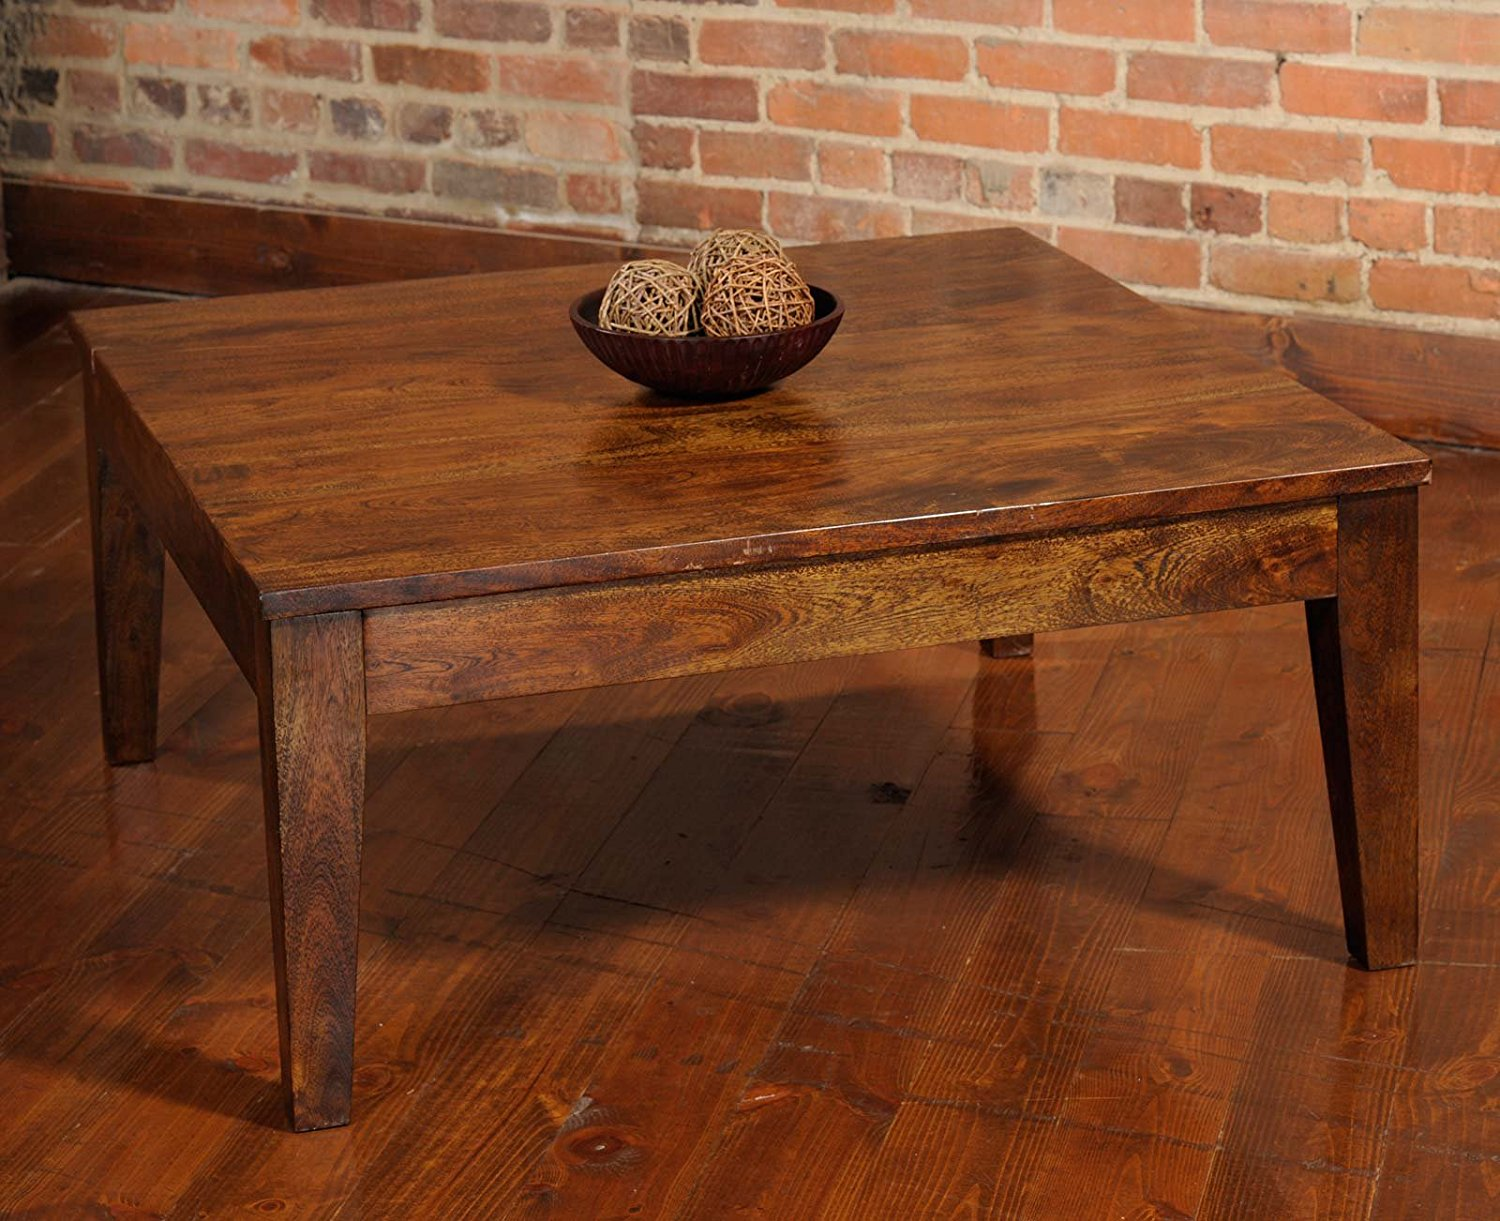 Wood Coffee Table - Amongst Marilyn's collection was a coffee table believed to have been sourced (handmade) from Mexico. It is difficult to find something identical because the piece is so unique, but with its striking lines and distinctly non-manufactured look, I think this fits the bill.